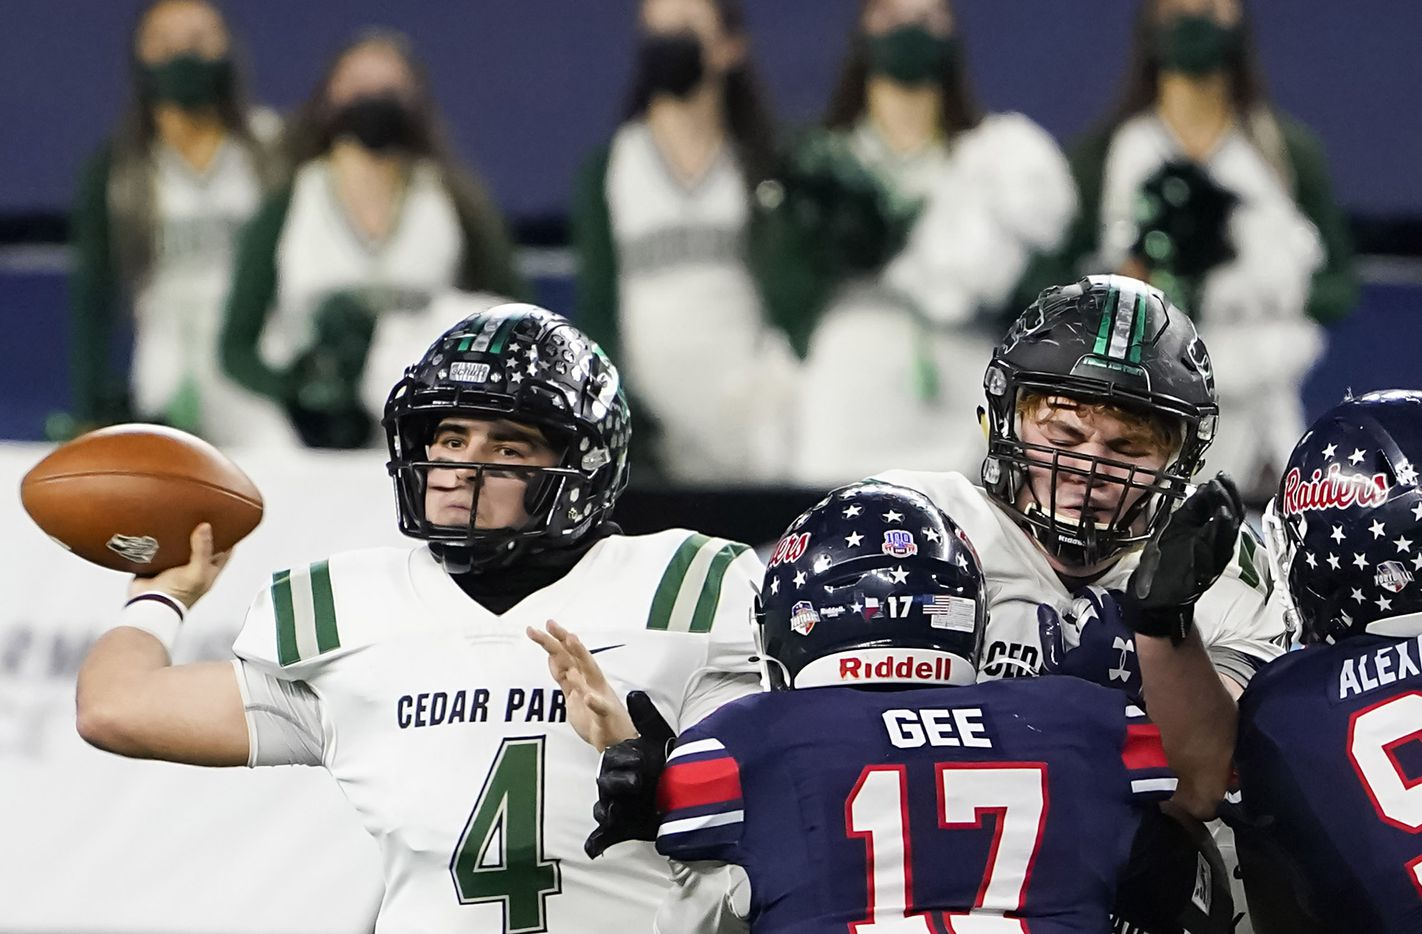 Cedar Park quarterback Ryder Hernandez (4) gets off a pass under pressure from Denton Ryan defensive lineman Michael Gee (17) during the first half of the Class 5A Division I state football championship game at AT&T Stadium on Friday, Jan. 15, 2021, in Arlington, Texas. (Smiley N. Pool/The Dallas Morning News)